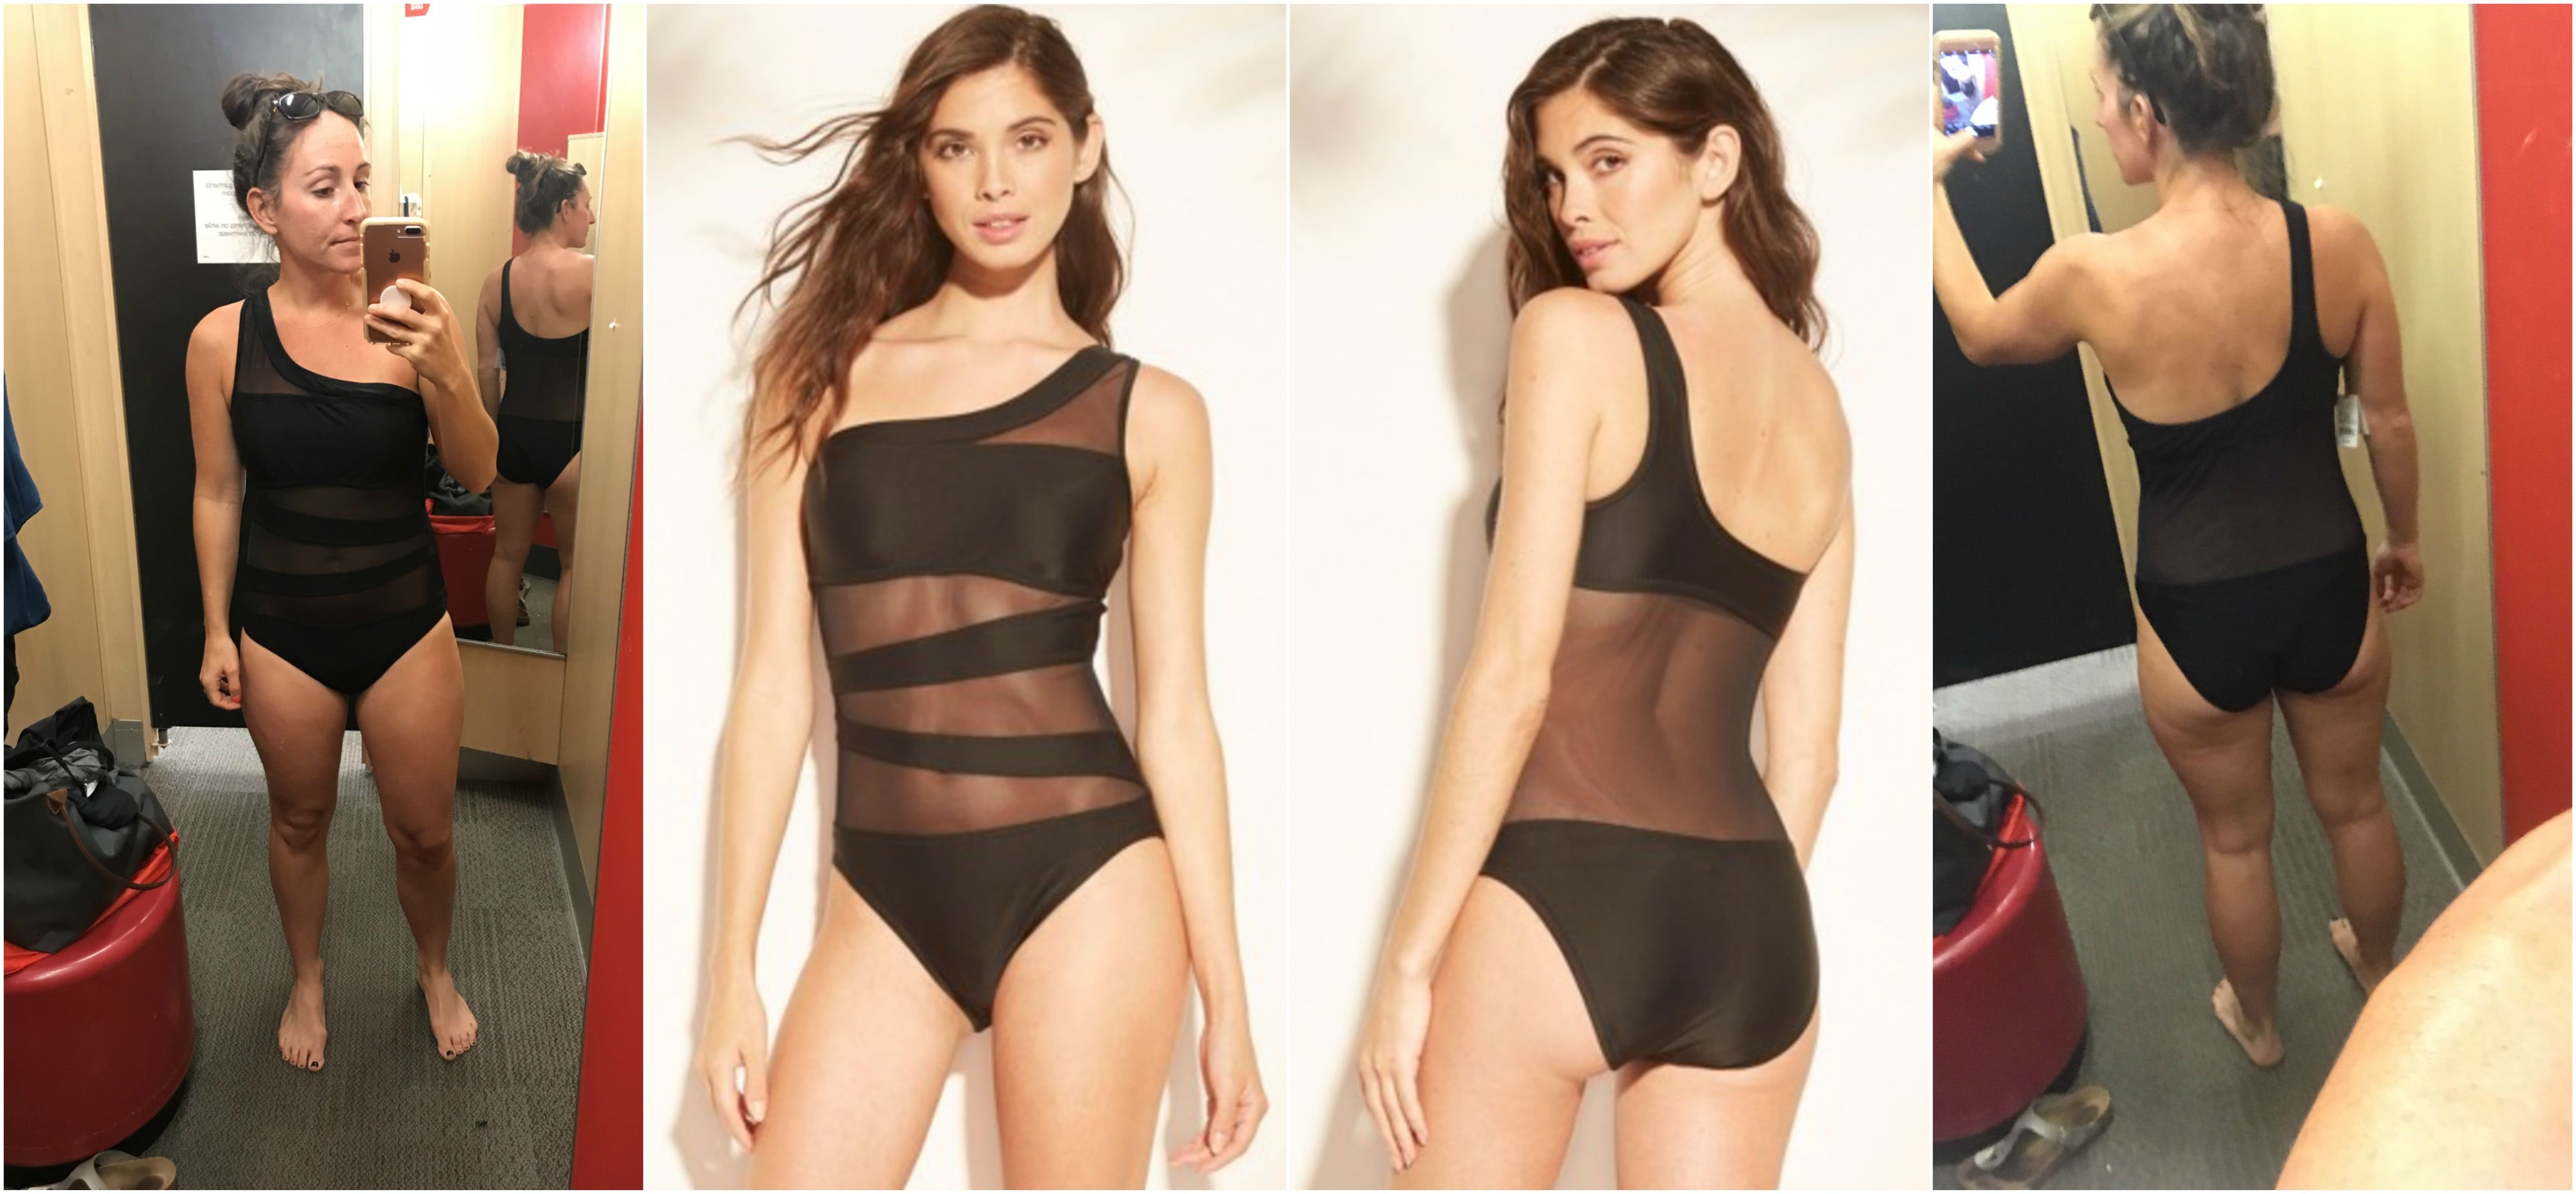 Black Mesh One Piece Swimsuit - THE OFFICIAL GUIDE TO TARGET SWIMWEAR 2019 - Target Swimsuits - Target Swimsuit Fit Guide - Target Swimwear Fit - One Piece Swimsuit Target - Target Womens Swimsuits - Target Juniors Swimsuit - High Waisted Swimsuits Target - Target Womens Bikinis - Bikini Fit Target - Target Girls Swimsuits - #swimsuit #target